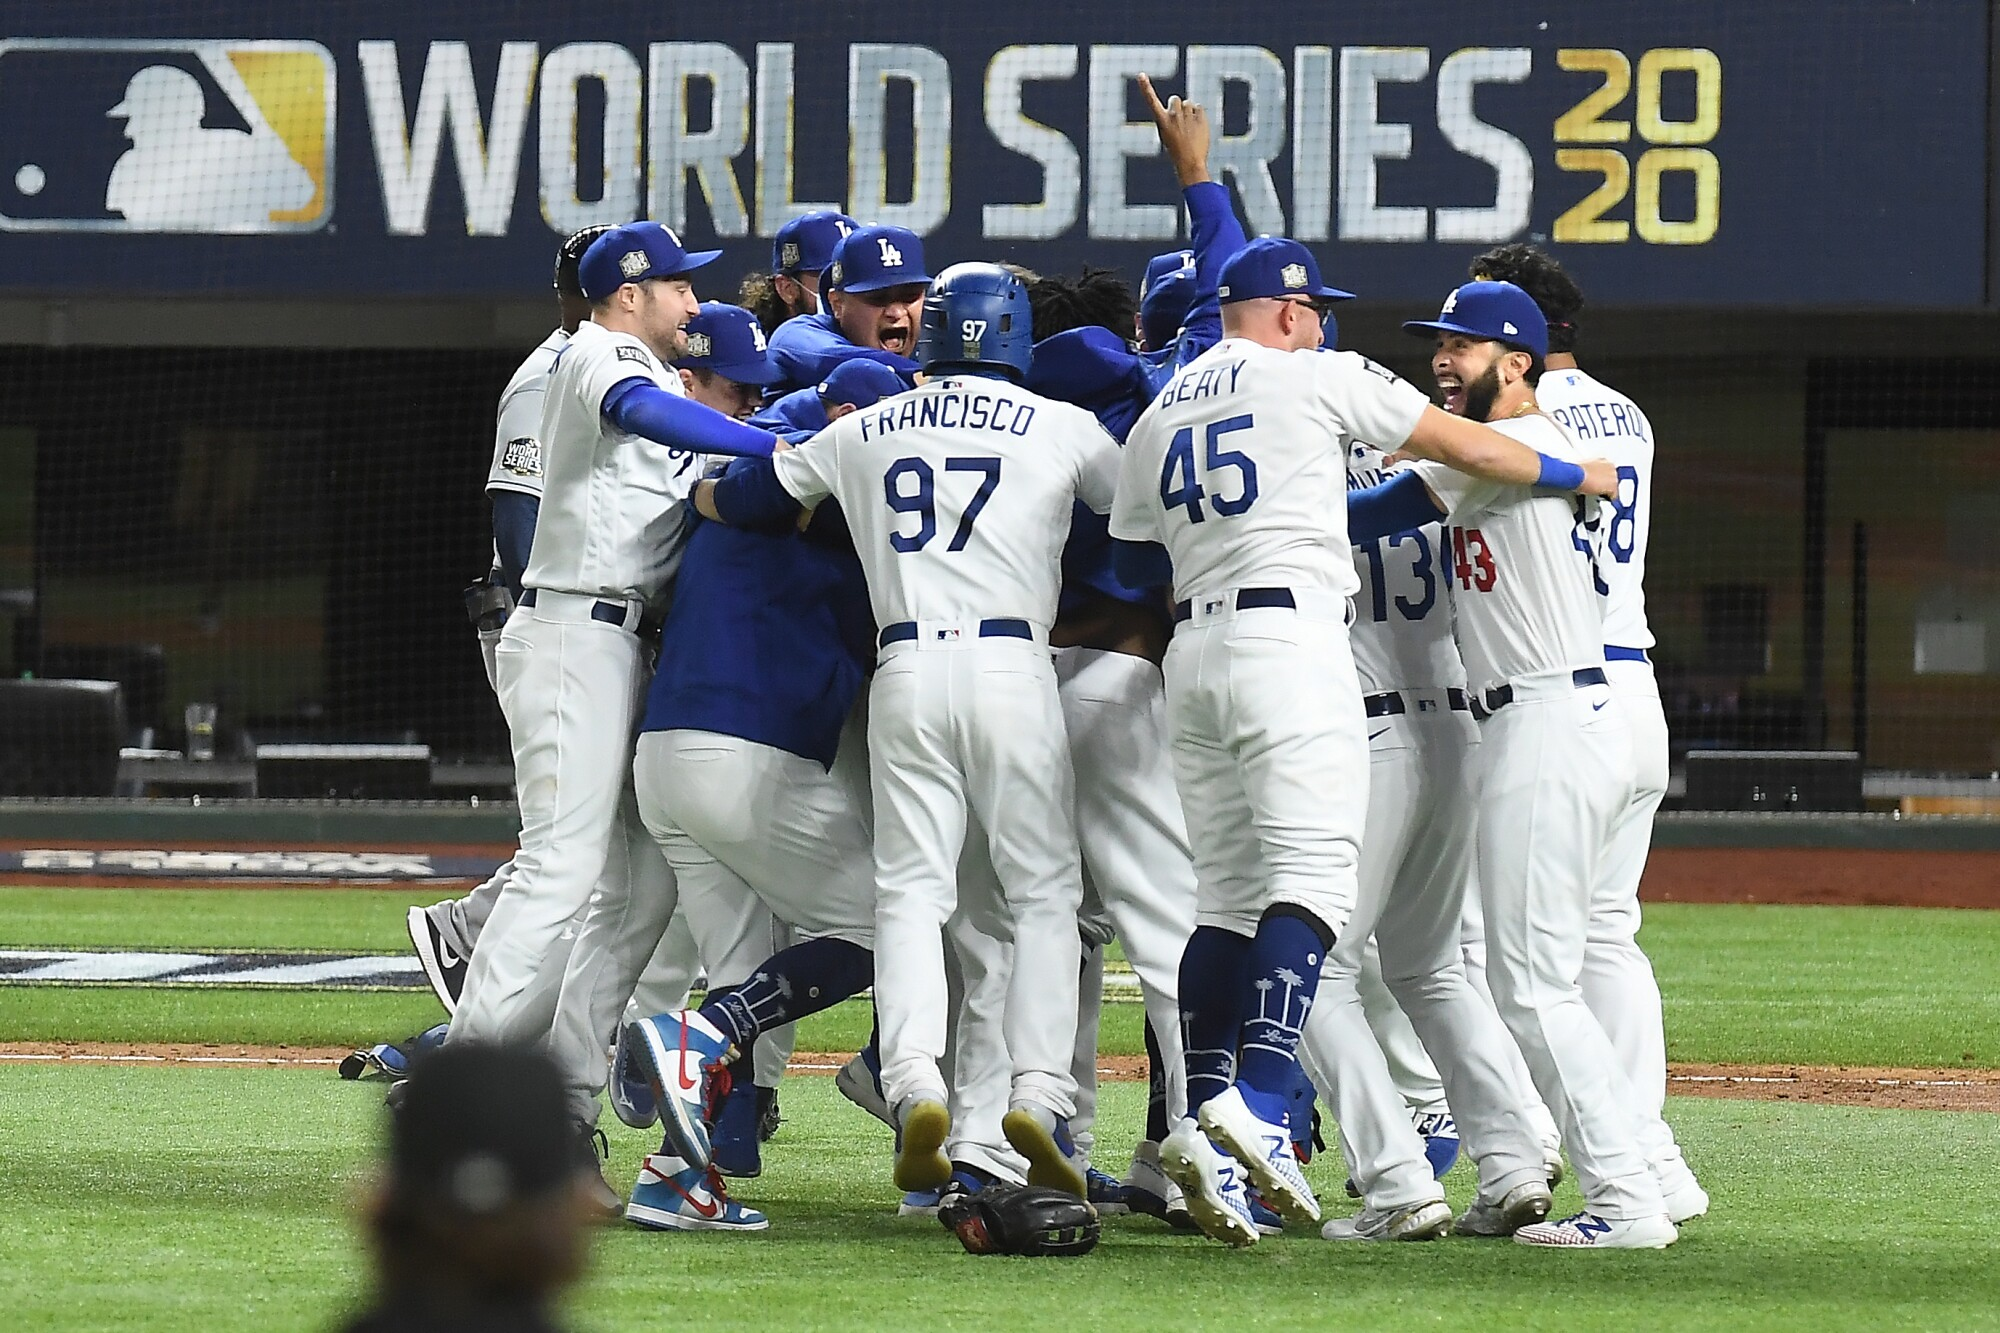 Dodgers players celebrate after defeating the Tampa Bay Rays in Game 6 of the World Series.